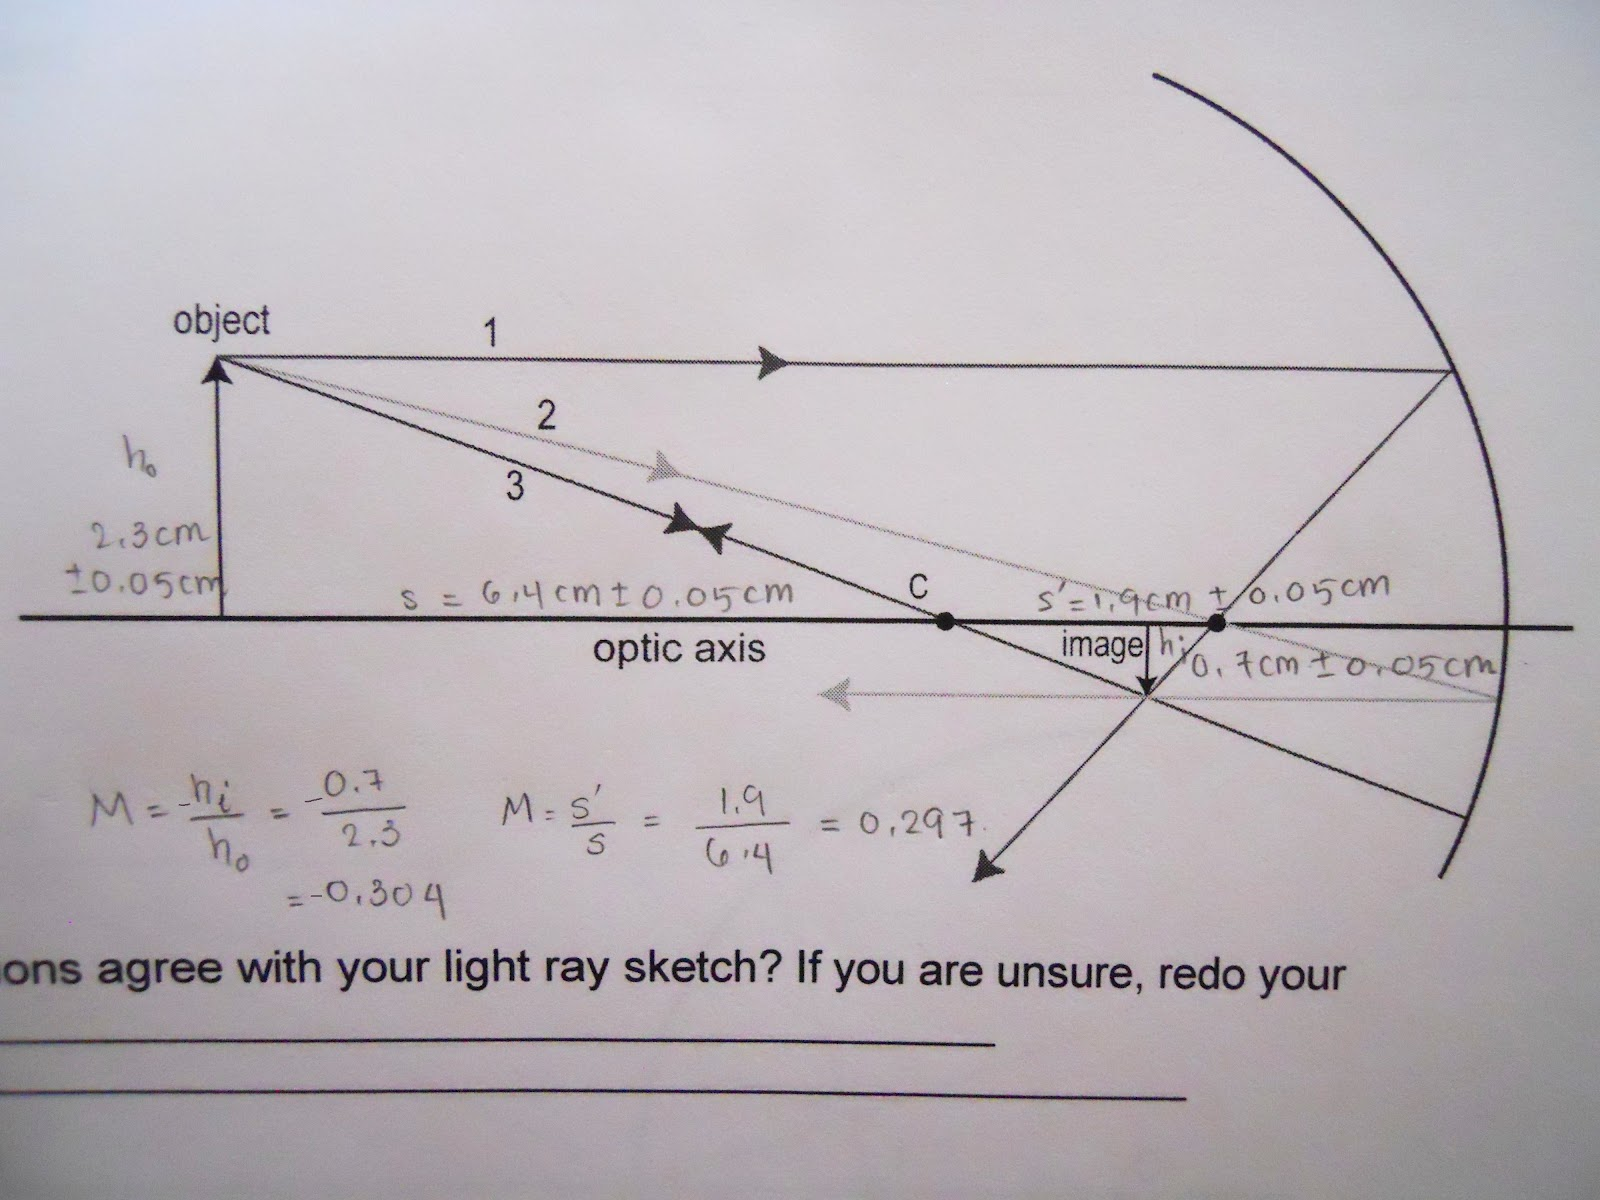 medium resolution of diagram 2 light ray diagrams which show how the image in concave mirror changes depending on the object distance